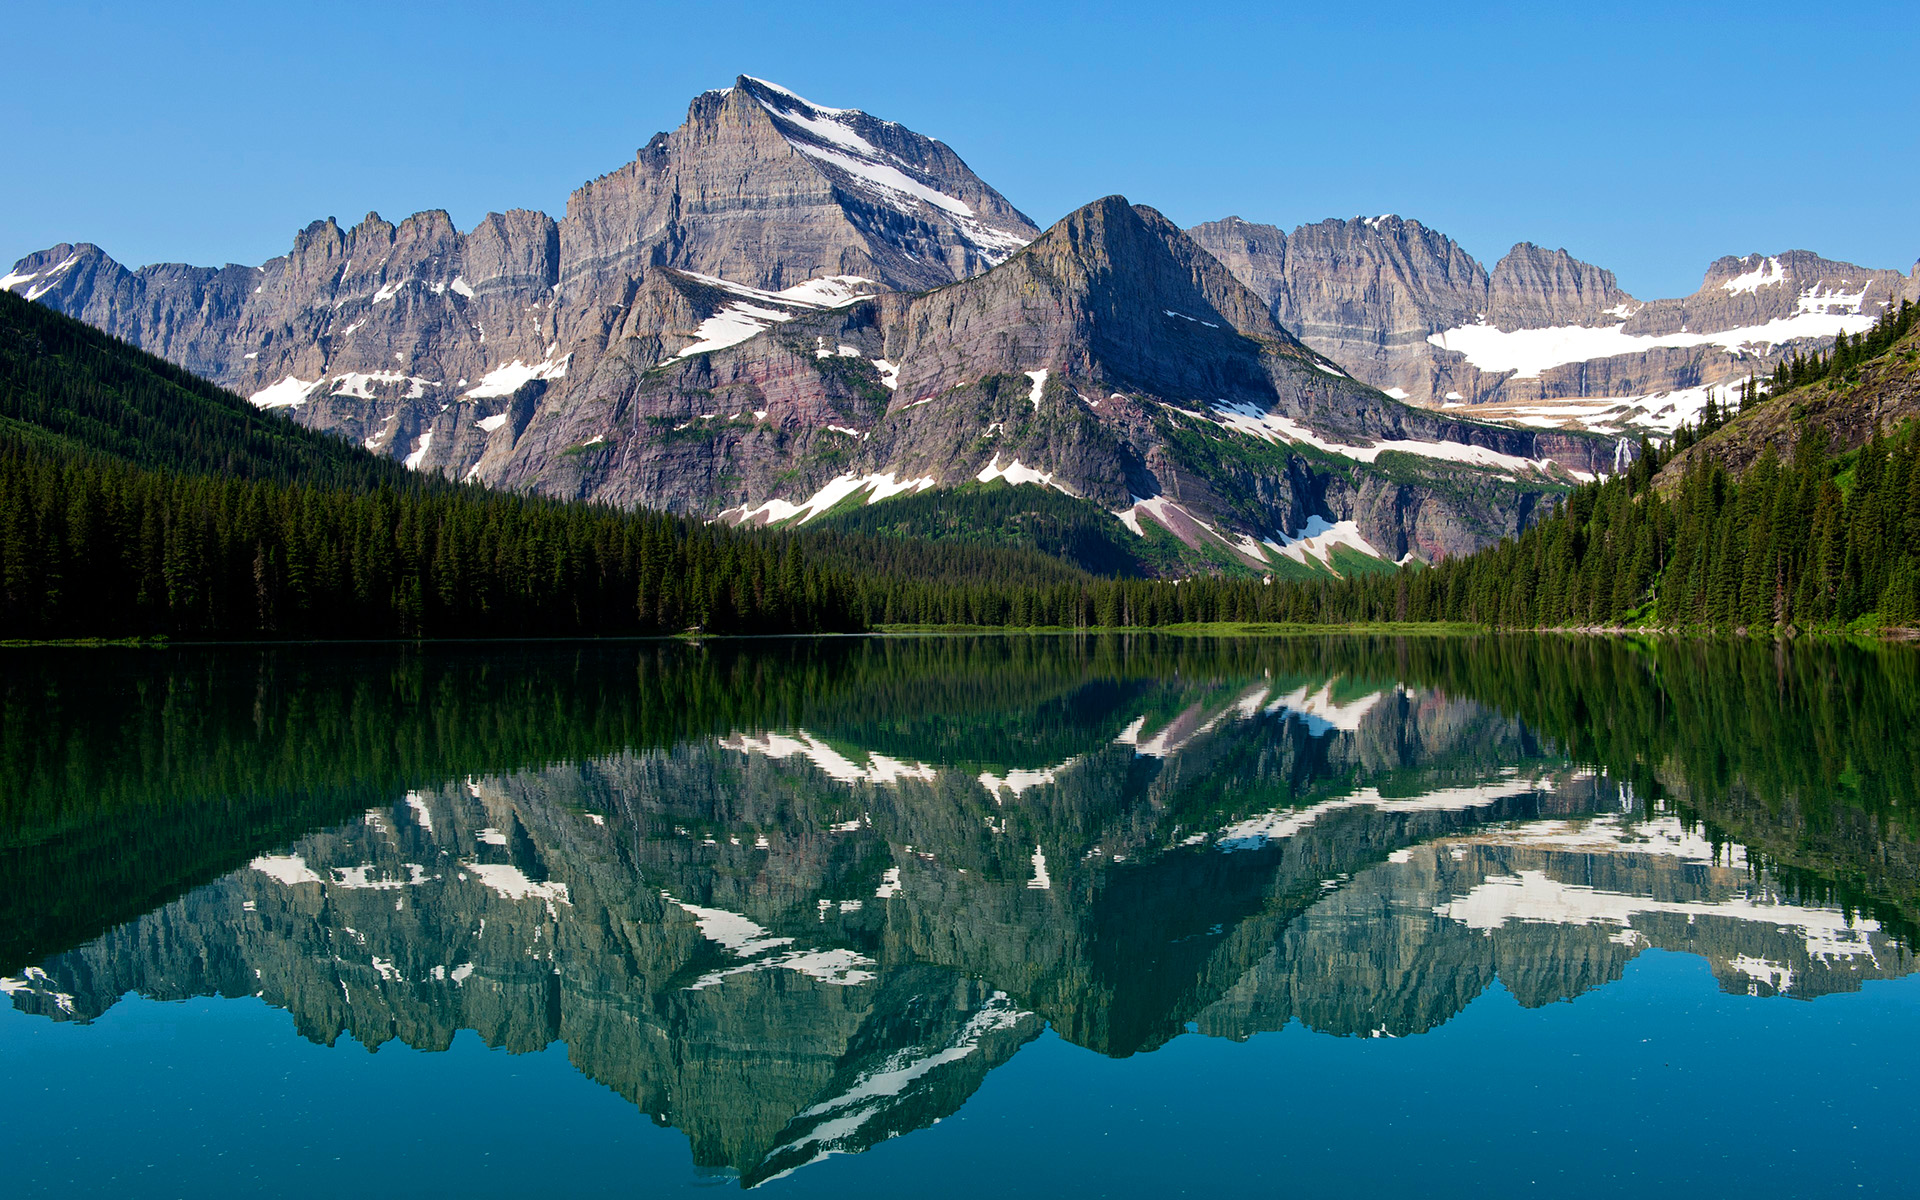 Mountain Lake Reflections Wallpapers | HD Wallpapers 318